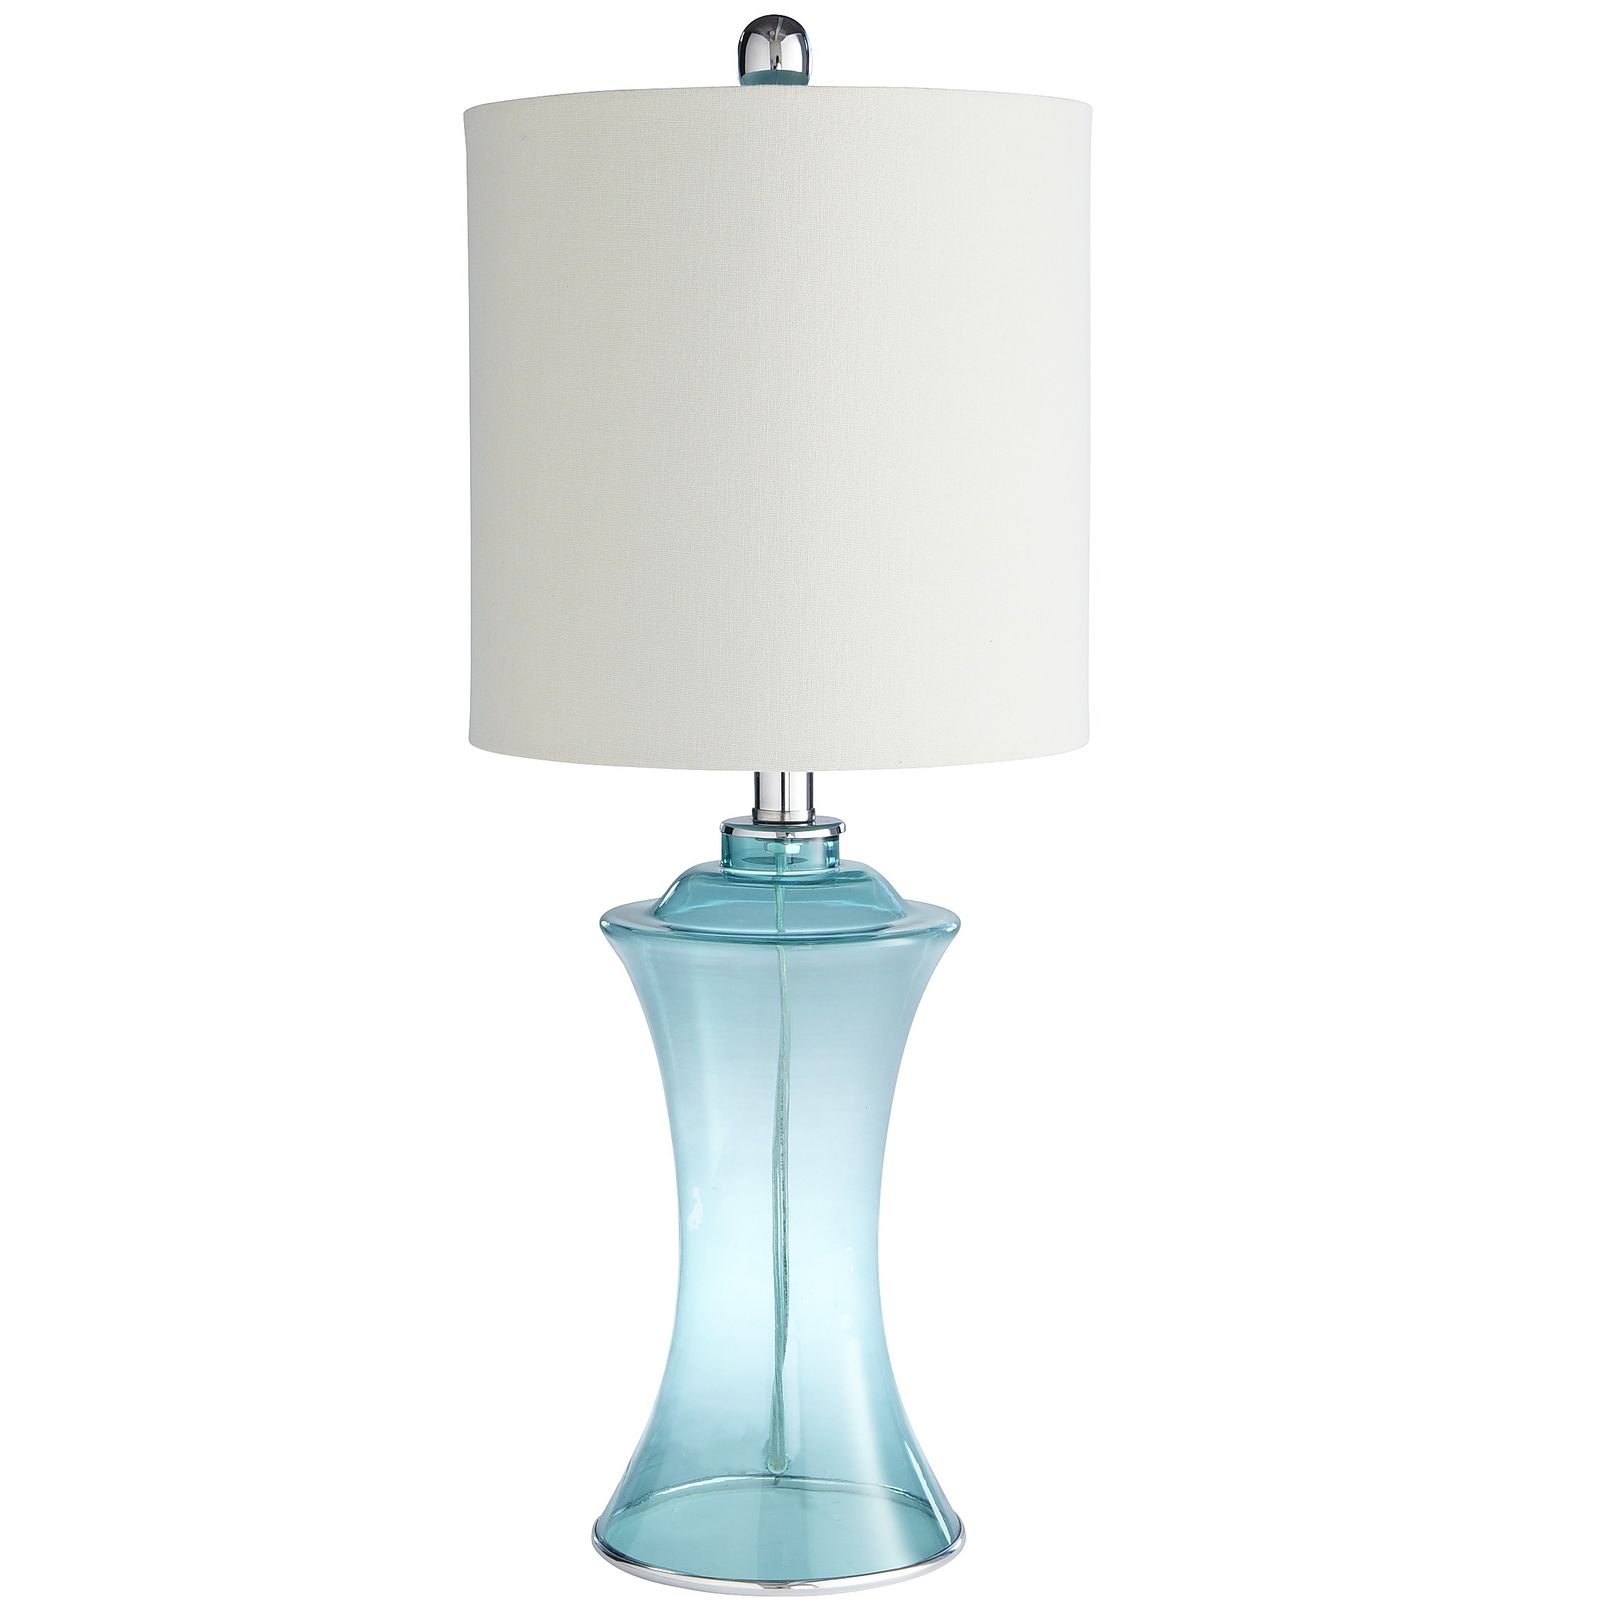 Sea glass table lamp 10 household items for every house Types of table lamps